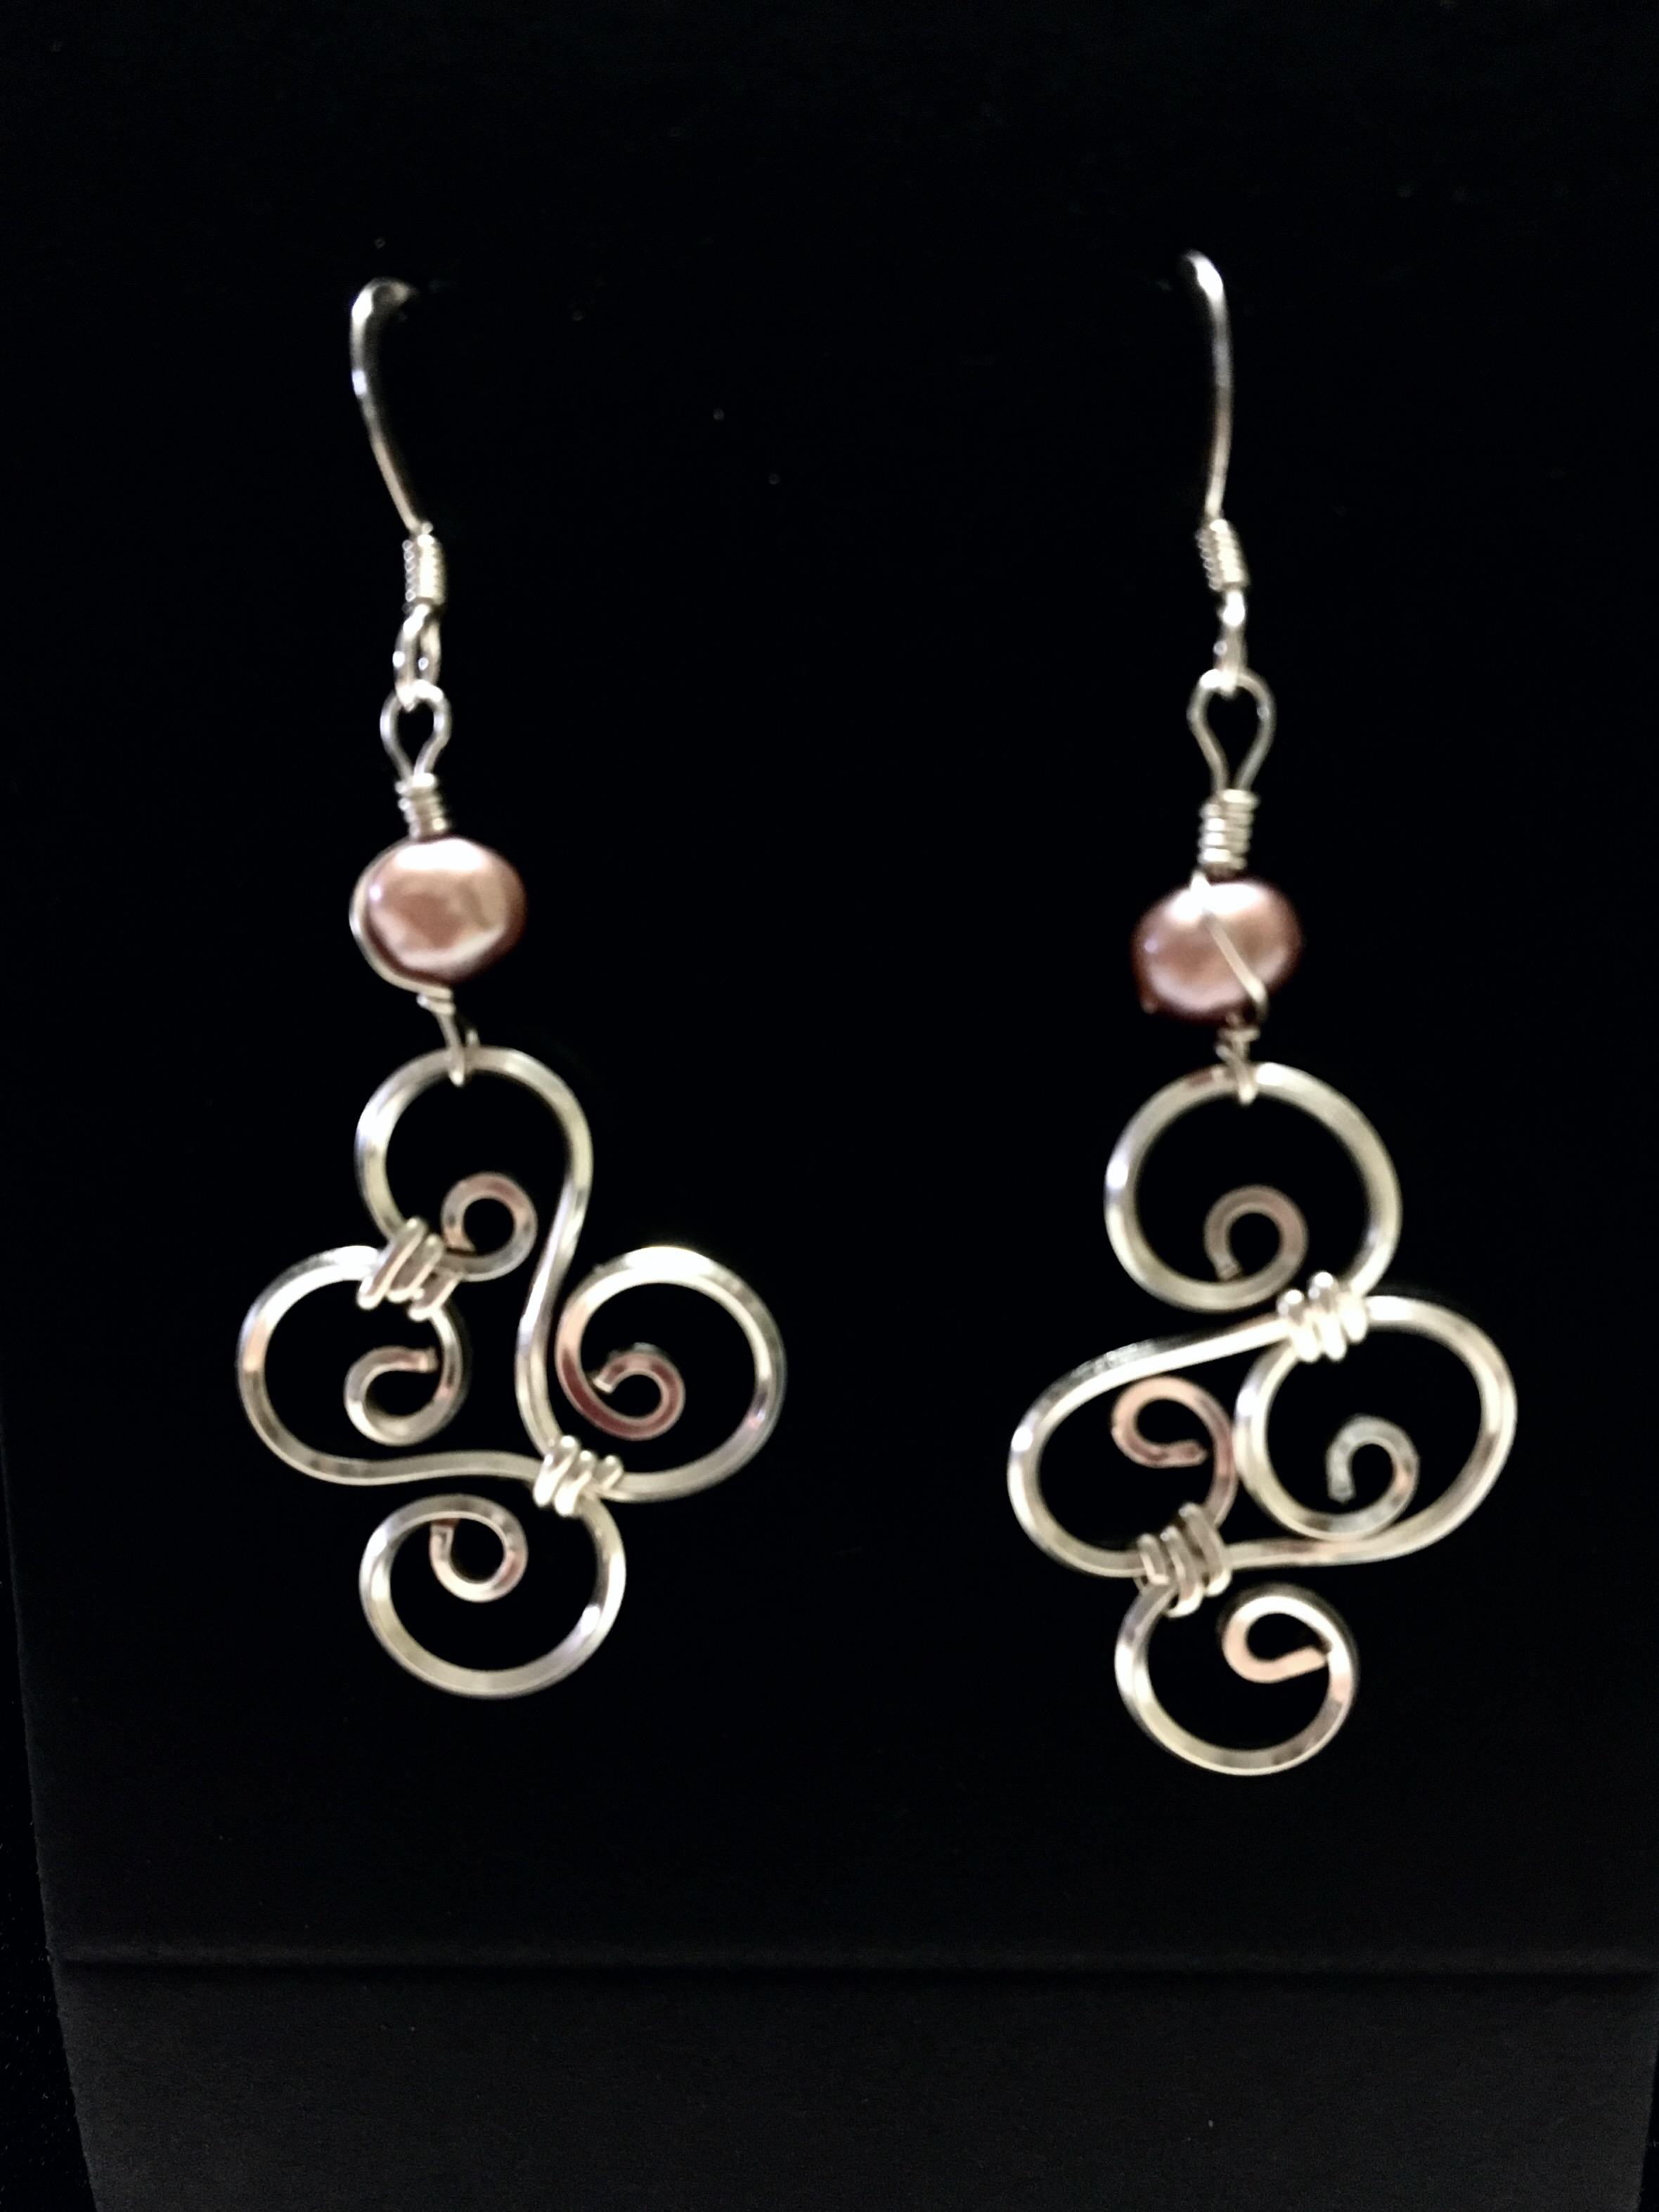 Candid Claire Earrings - Swirls - Silver Plated and rhodocrosite